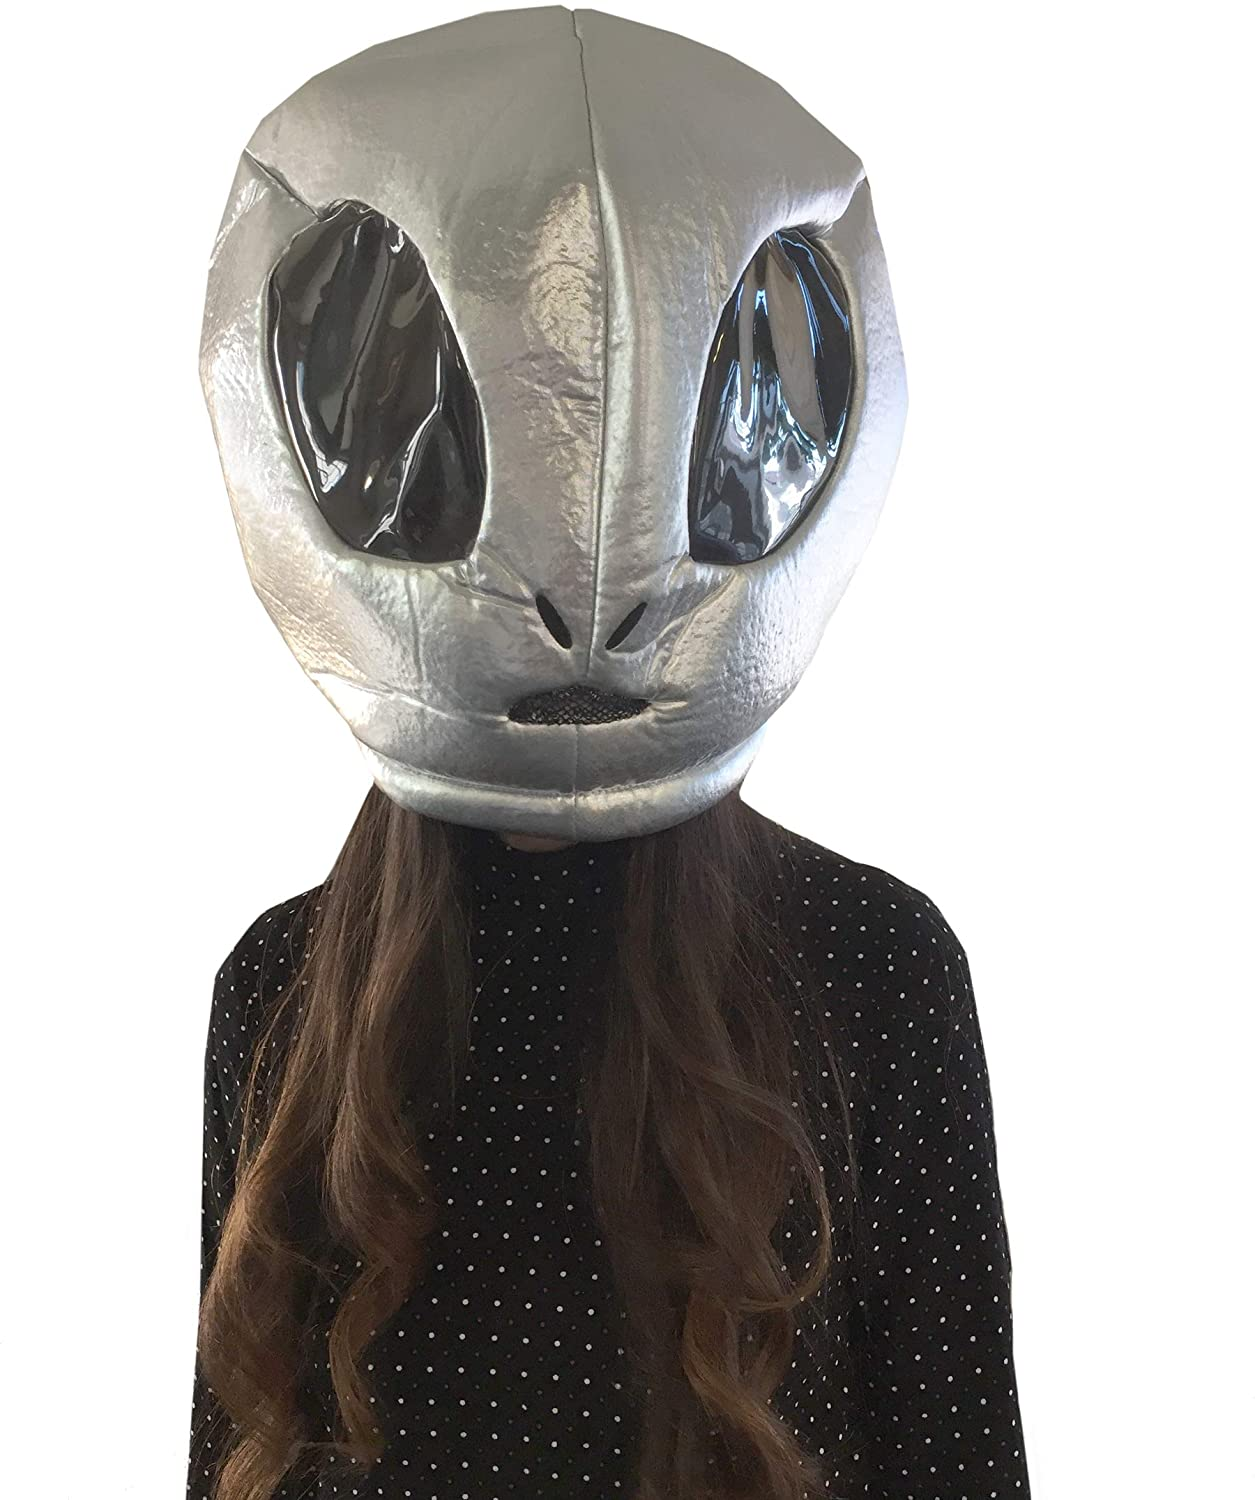 CLEVER IDIOTS INC Animal Head Mask - Plush Costume for Halloween Parties & Cosplay (Alien)